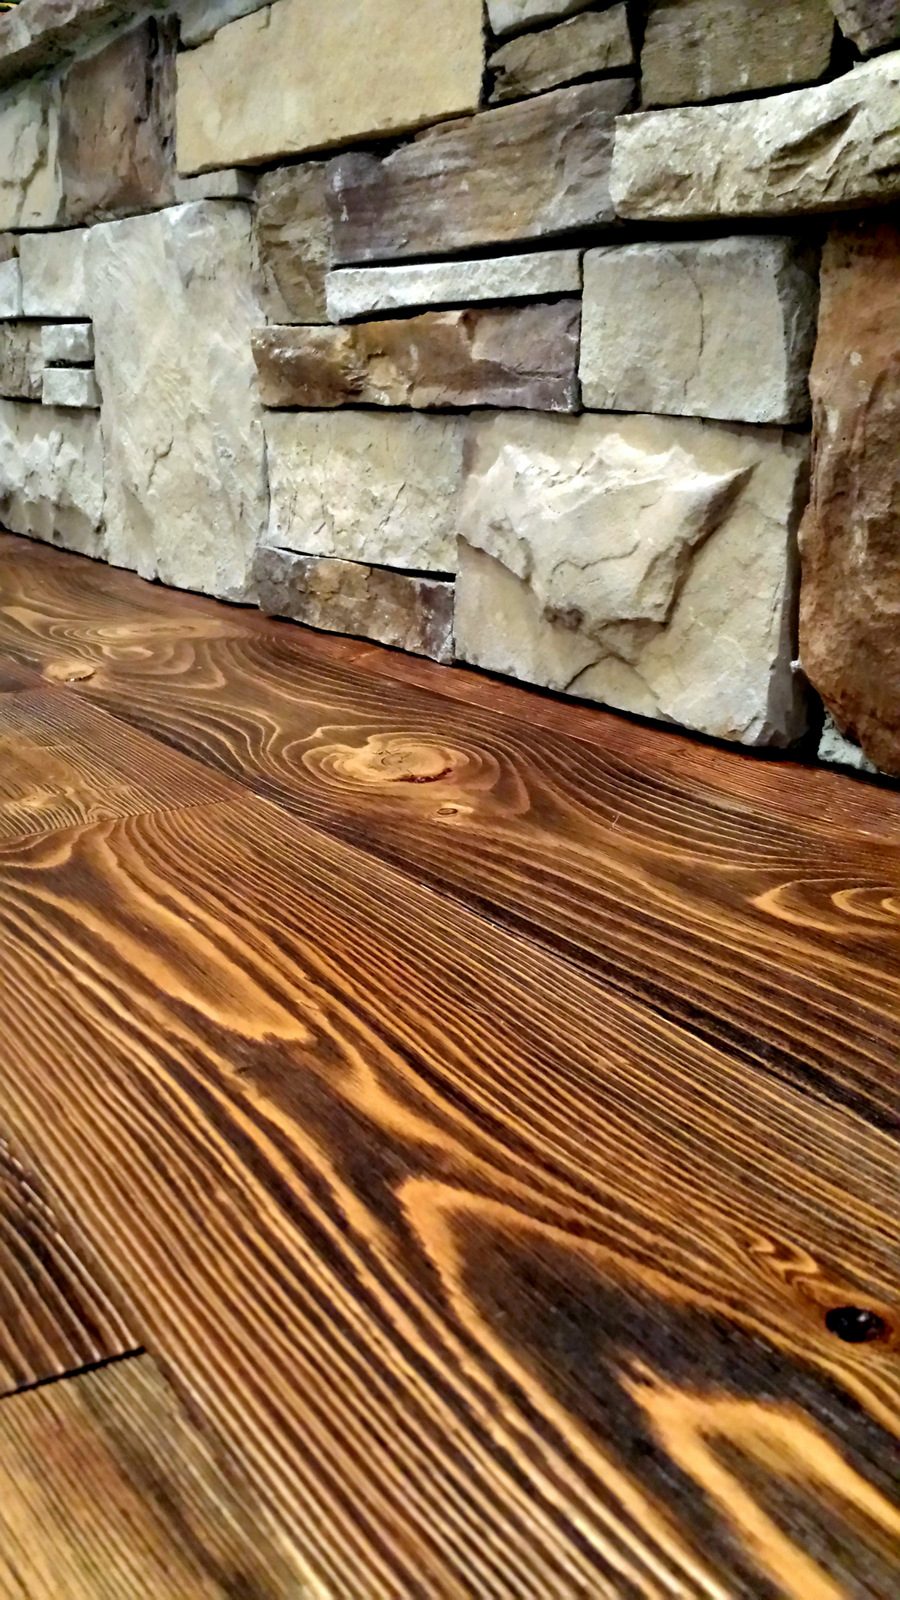 Douglas fir flooring sustainable lumber company